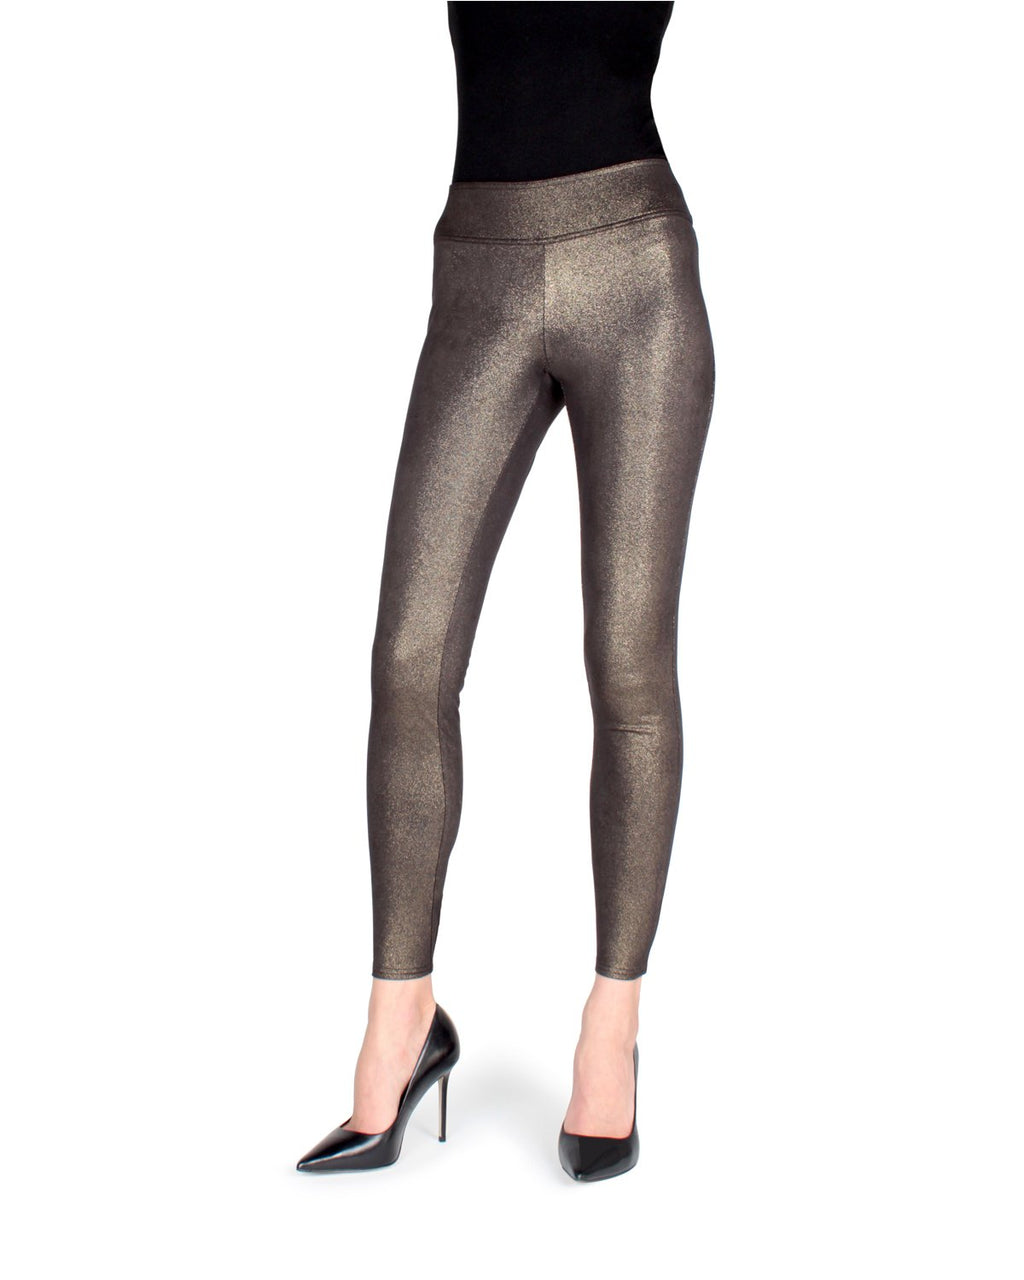 Memoi Black/Gold Alliage Sparkle Shaper Legging | Women's Hosiery - Premium Leggings